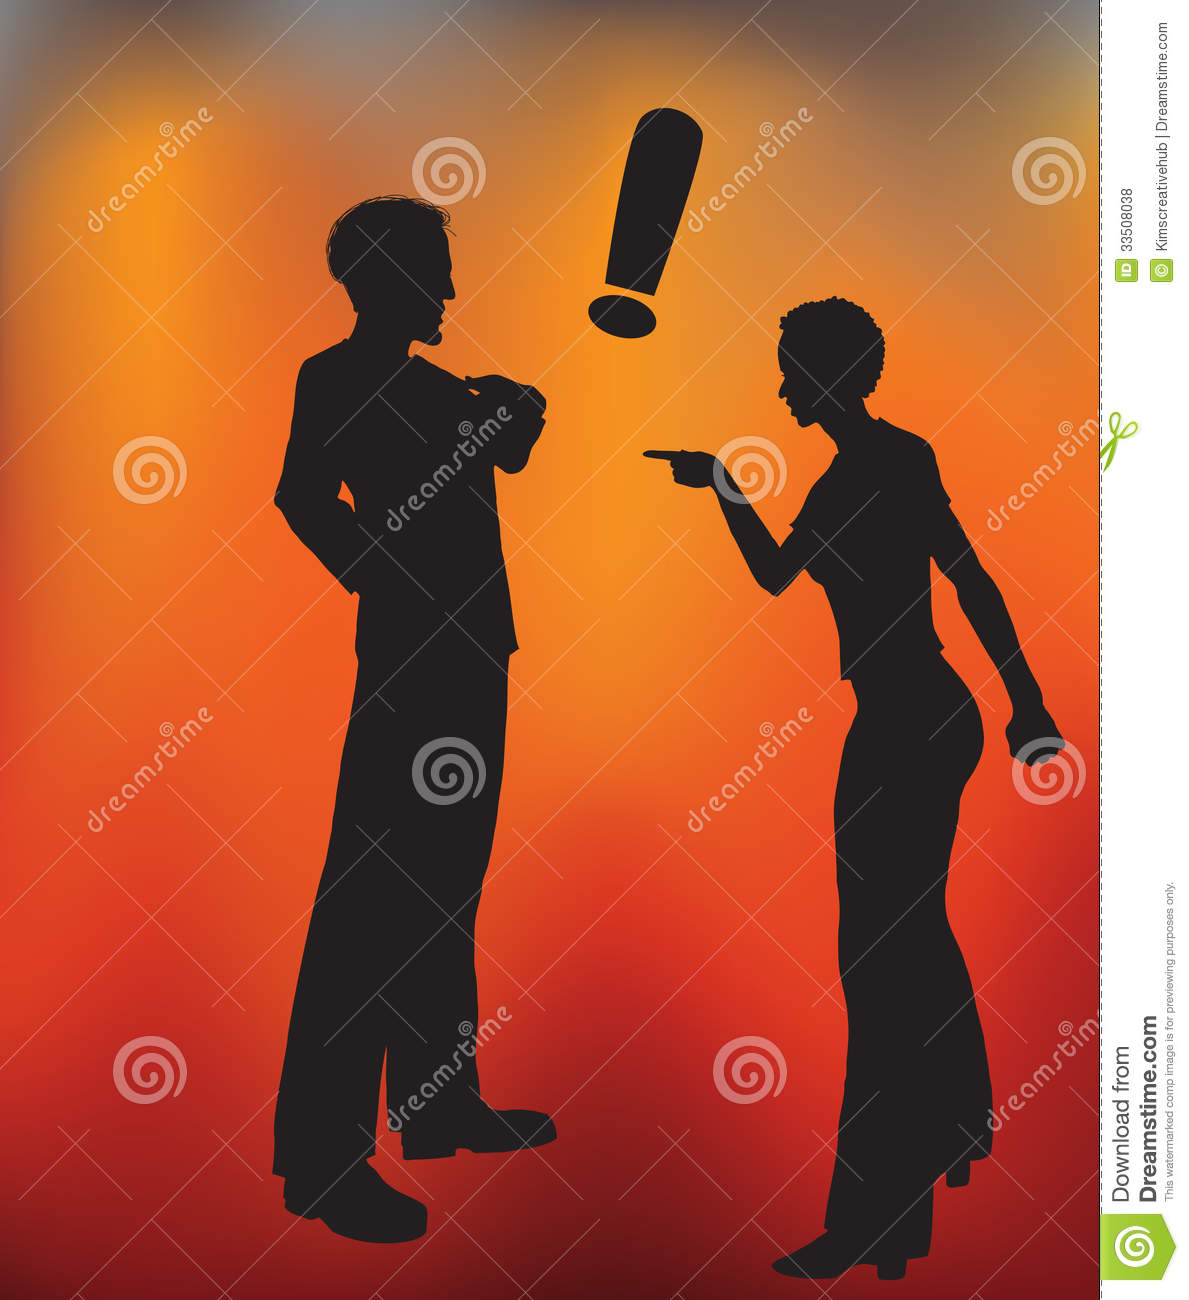 Couple In A Heated Argument Royalty Free Stock Photos.